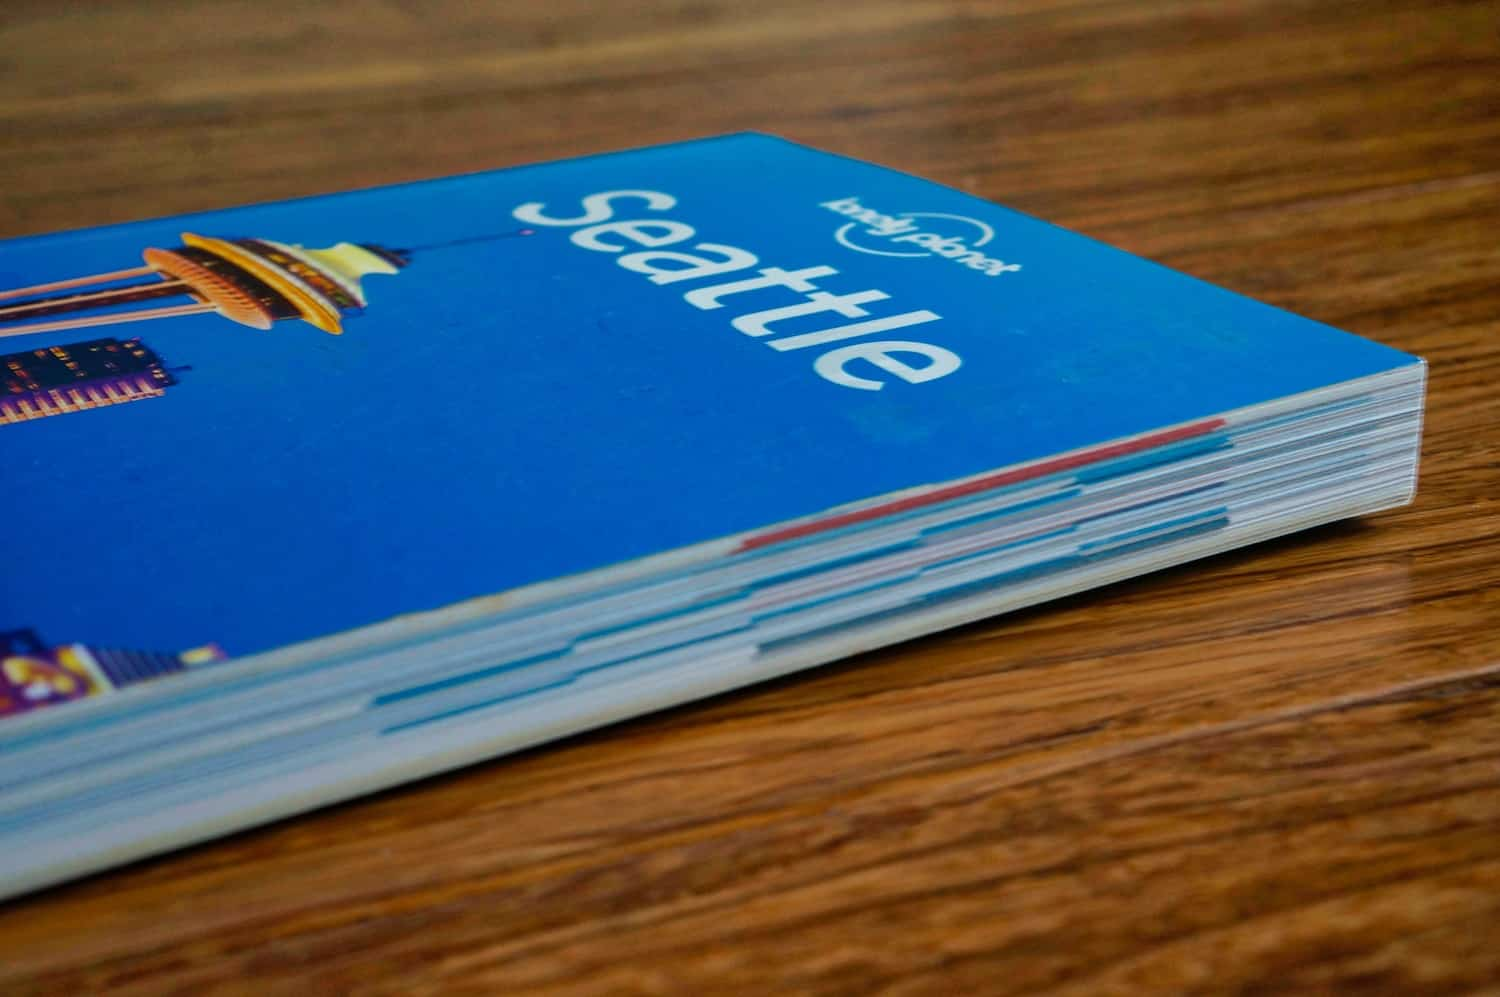 How to Use a Travel Guidebook: Understand the Organization